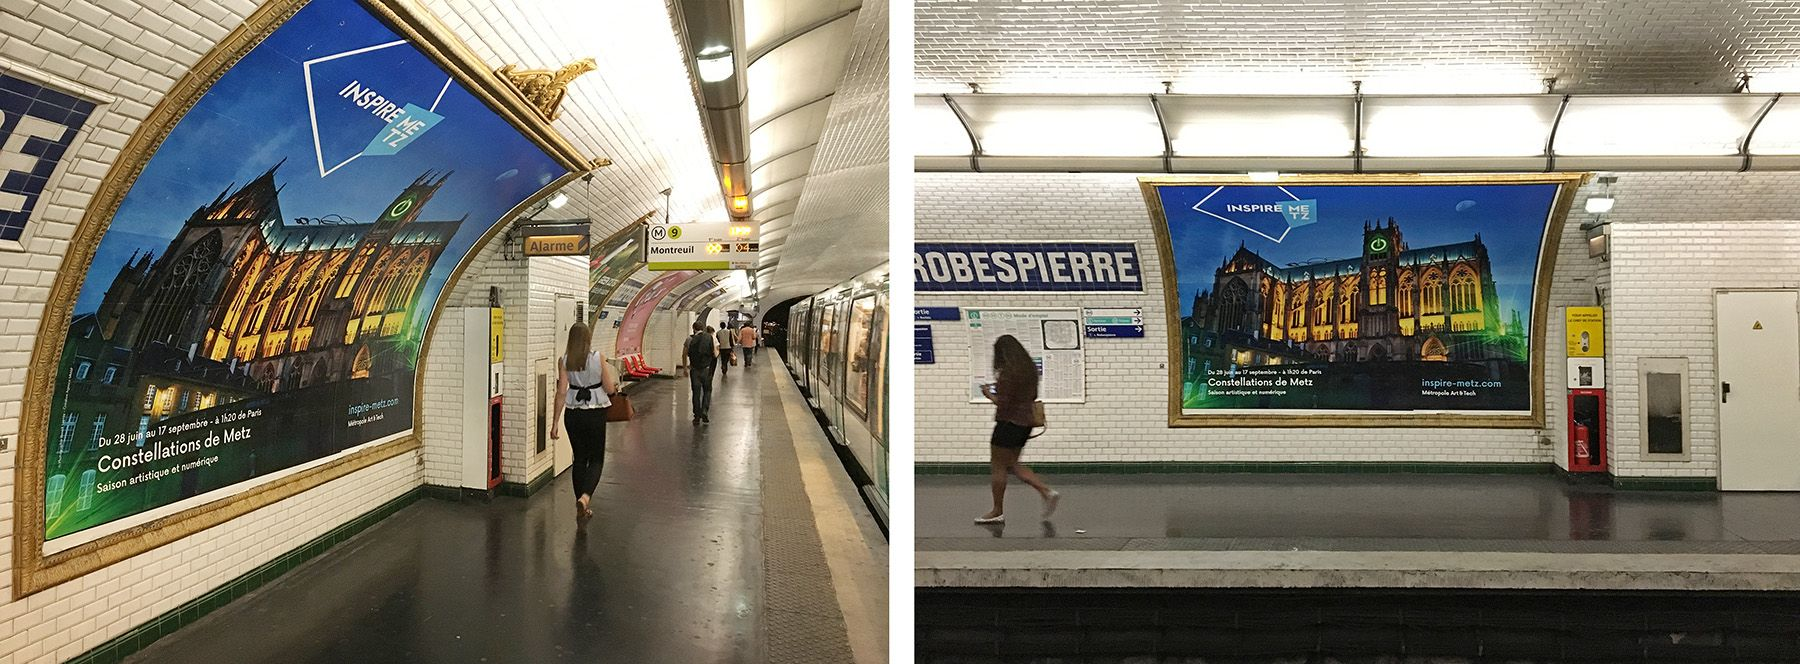 "Inspire Metz"" campaign in the subway of Paris"